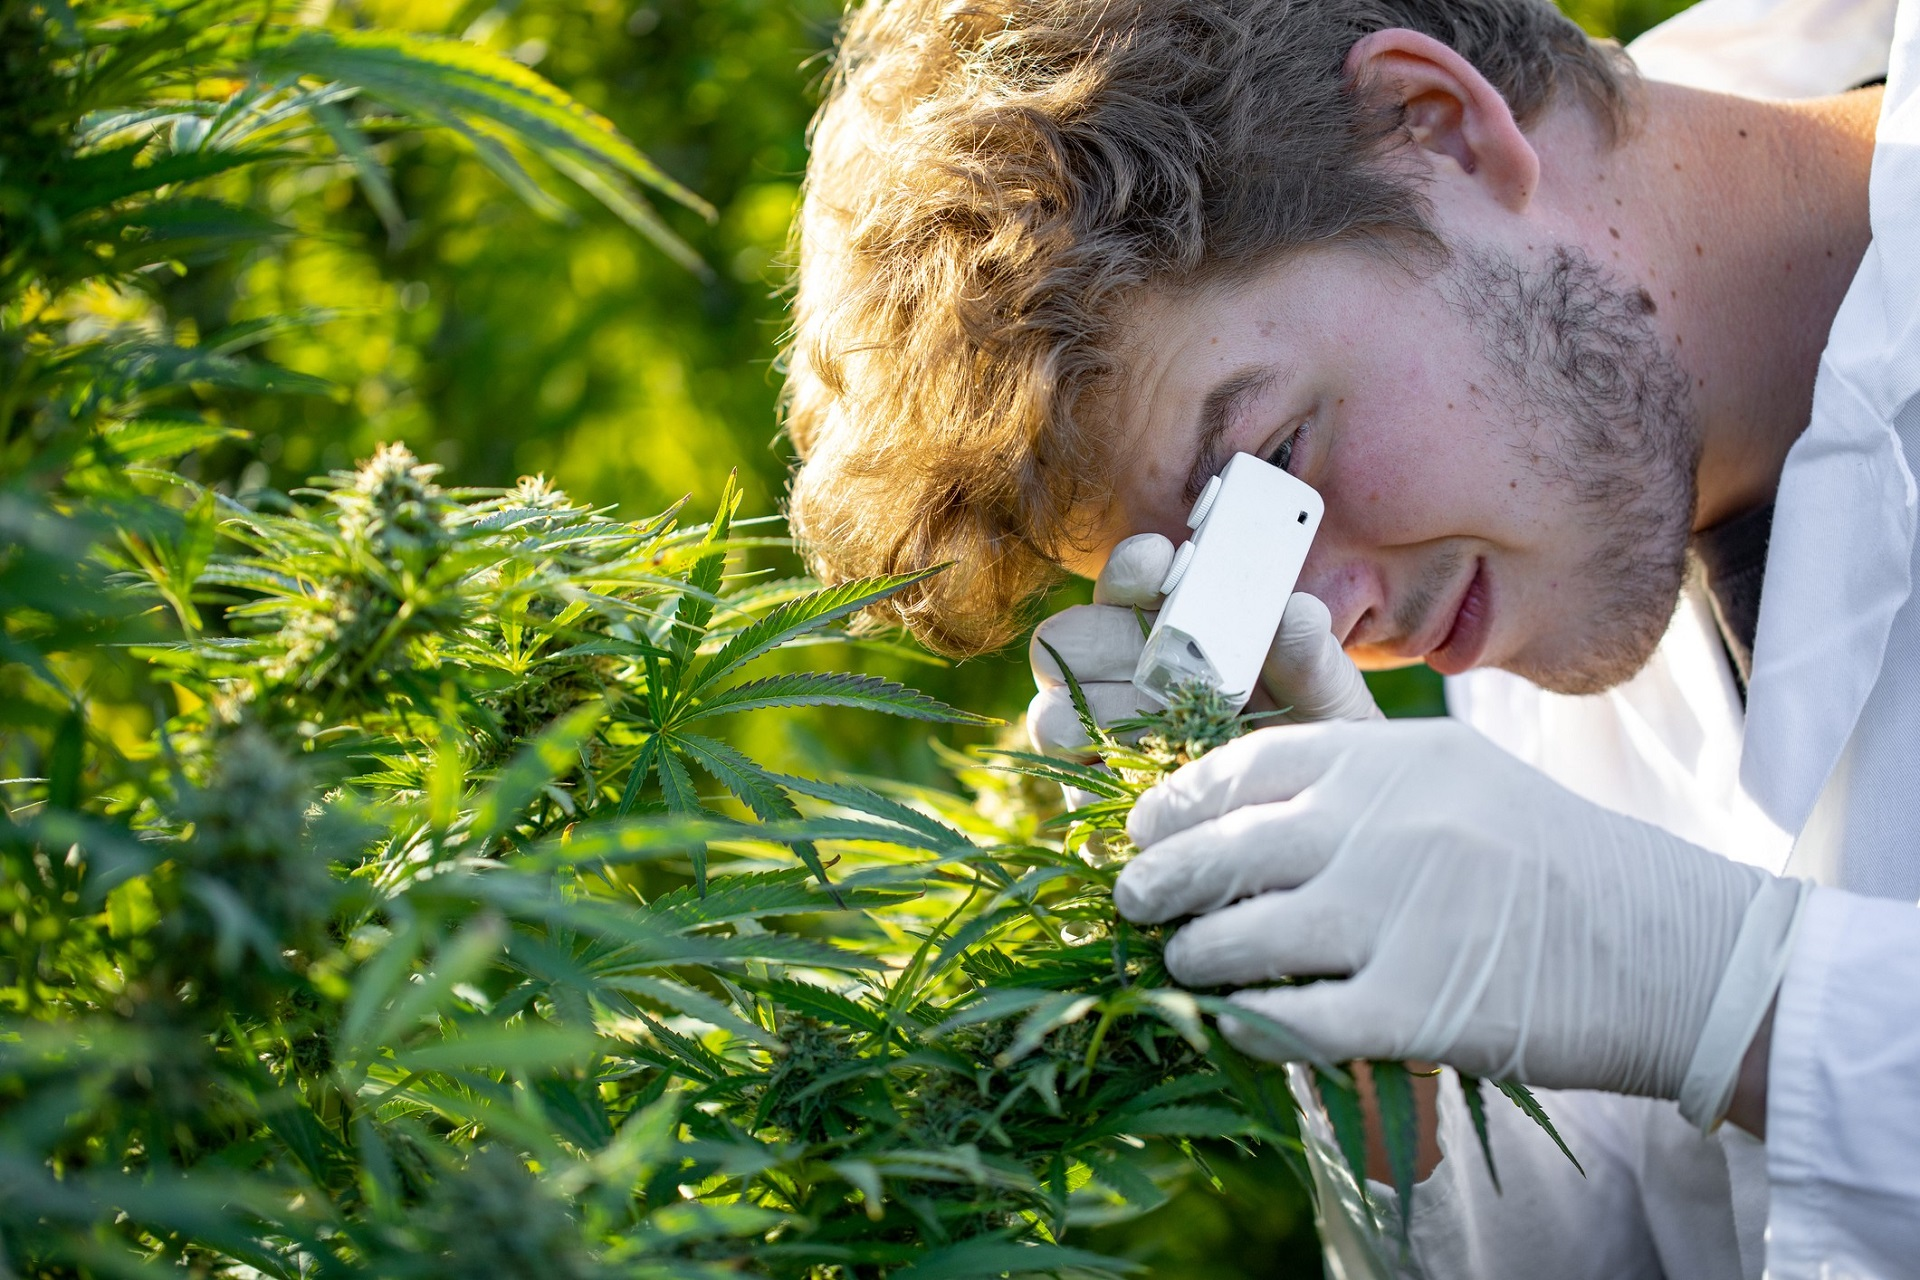 Therapeutic Uses of Marijuana - Are They Worth Considering?